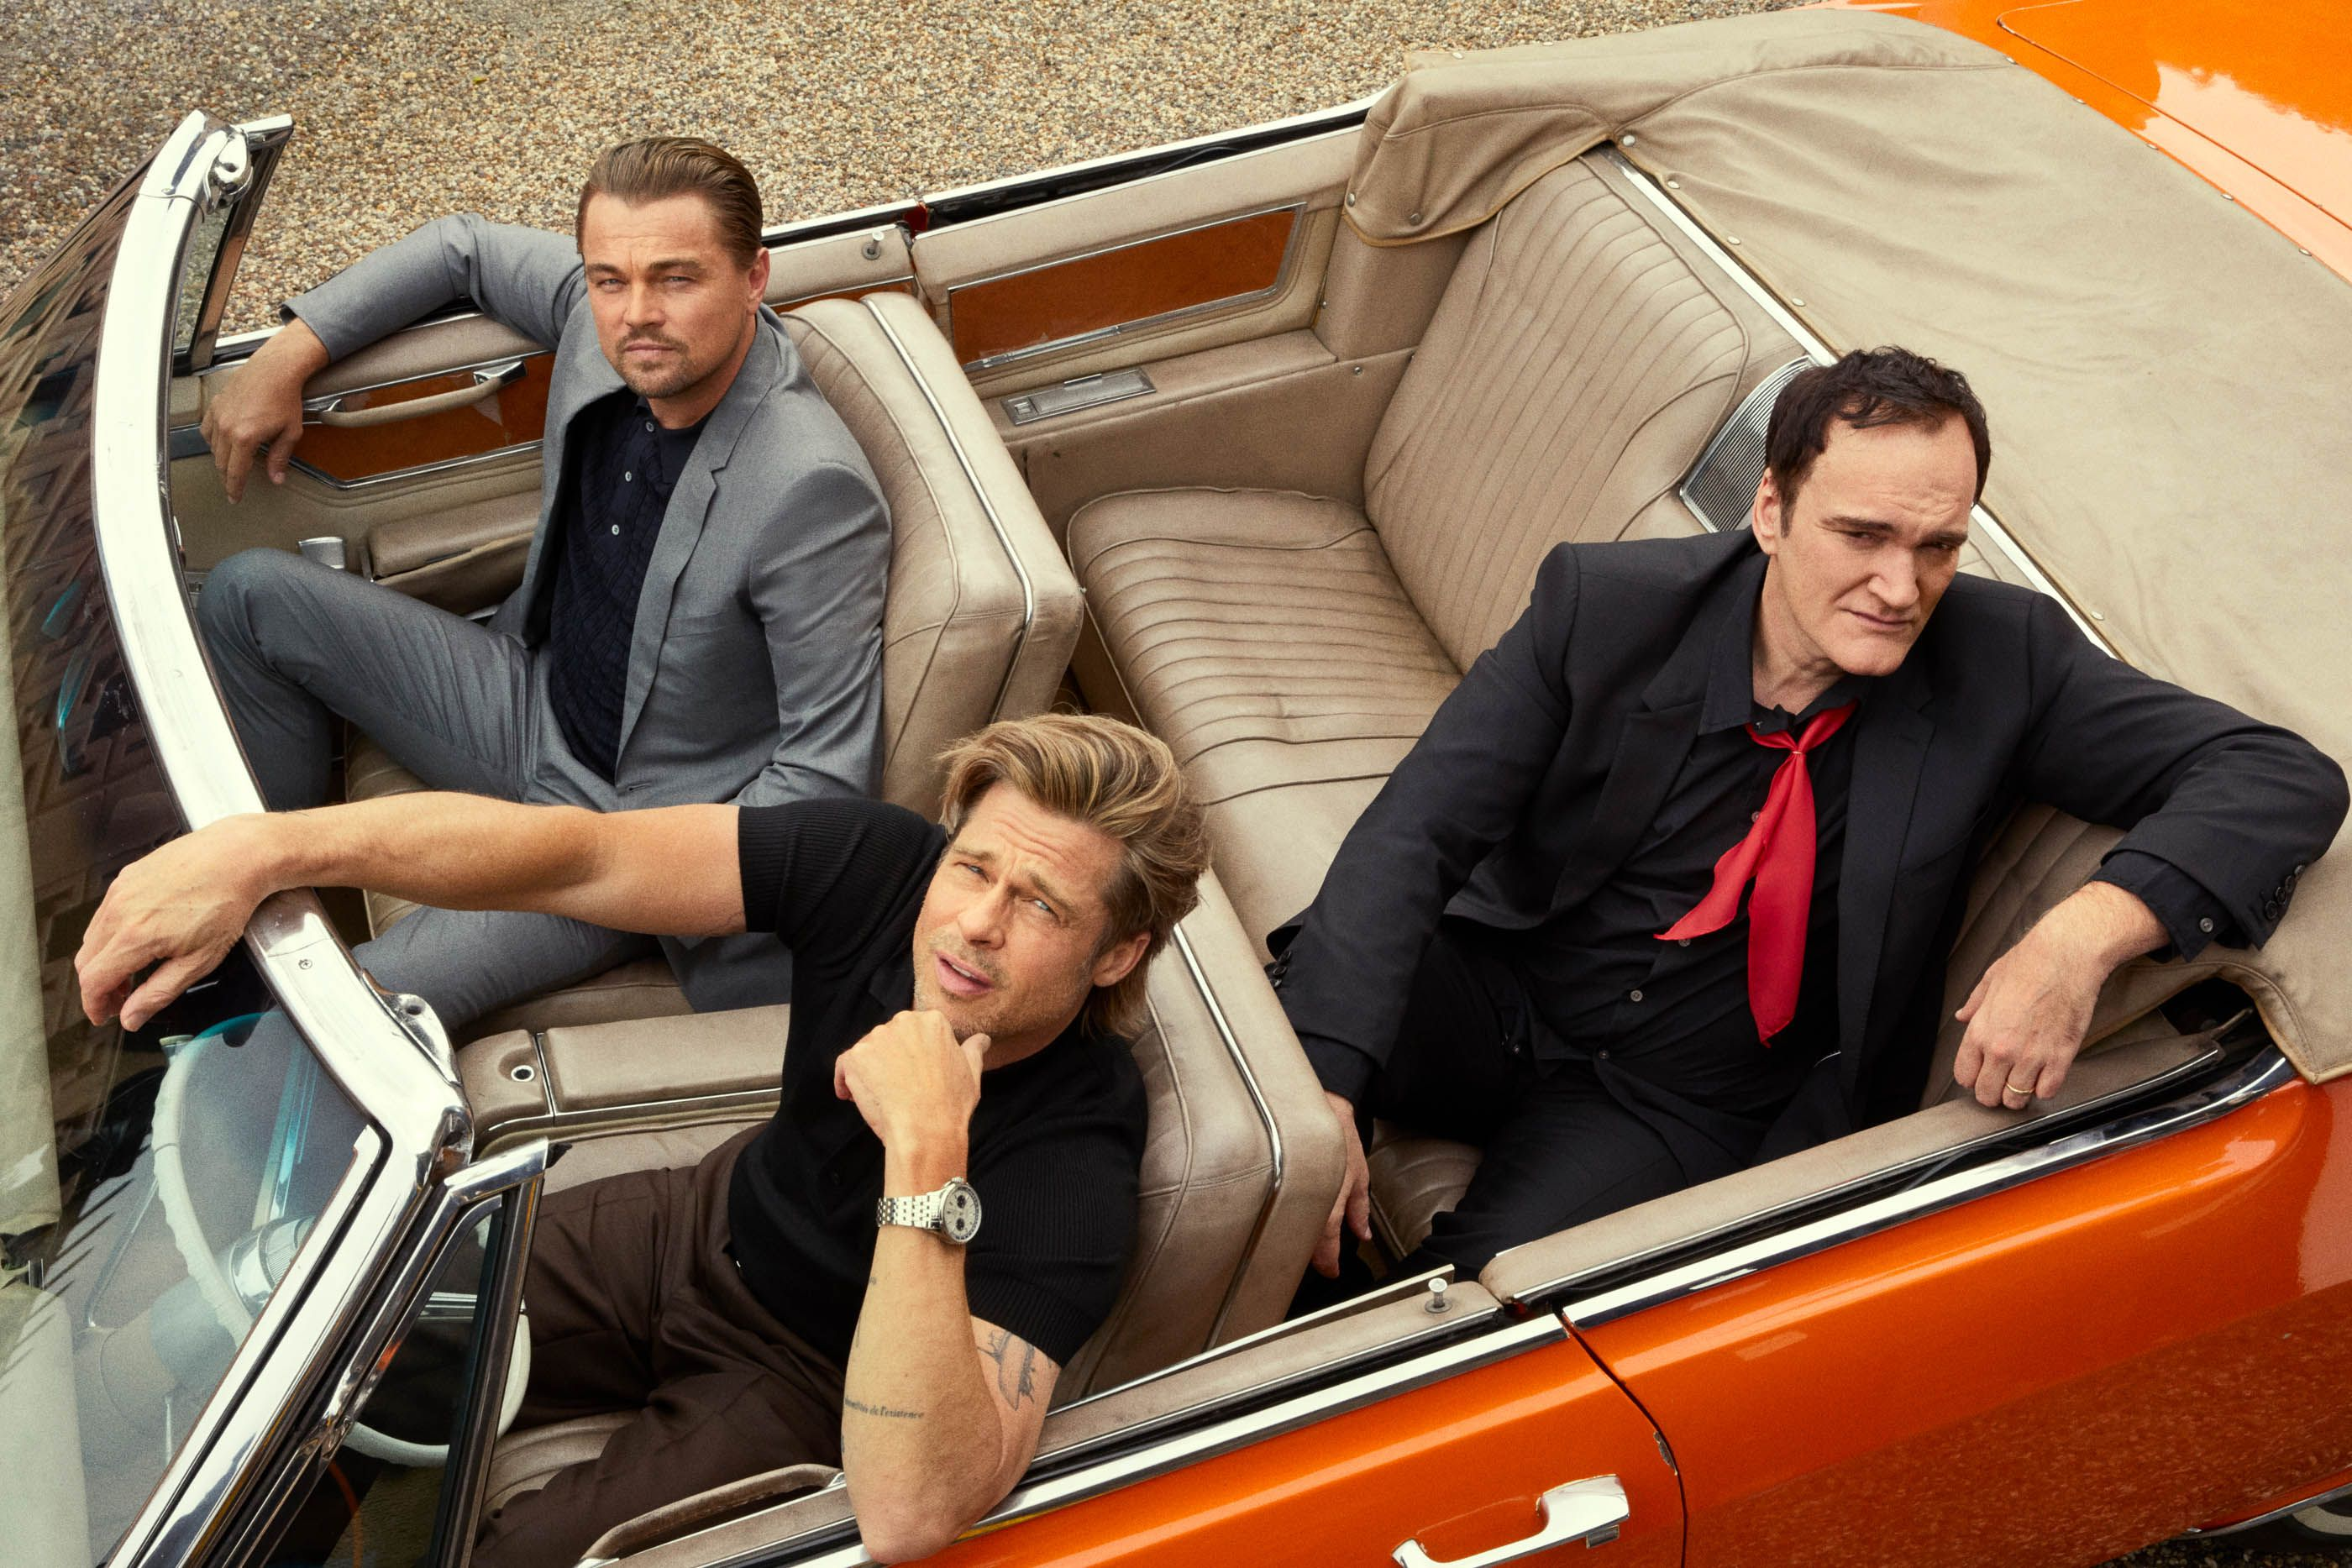 Quentin Tarantino, Brad Pitt, and Leonardo DiCaprio Take You Inside